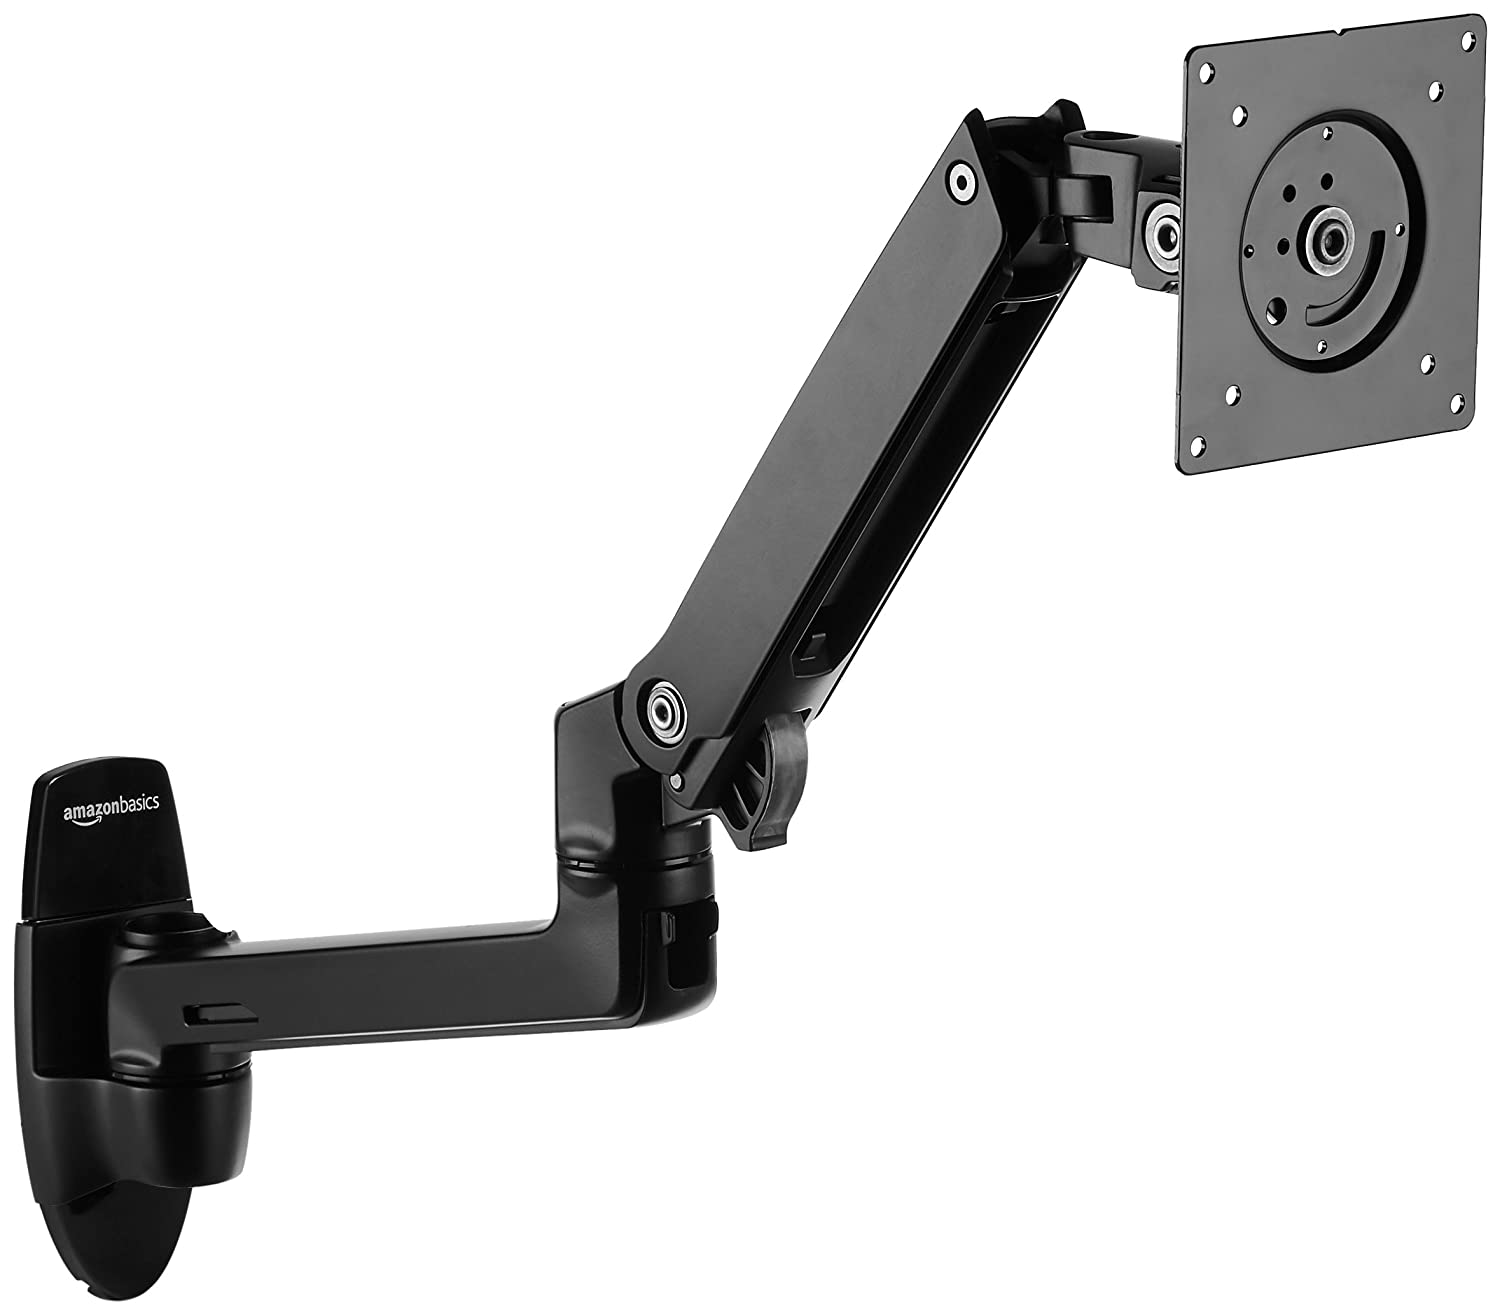 AmazonBasics Premium Wall Mount Monitor Stand - Lift Engine Arm Mount, Aluminum